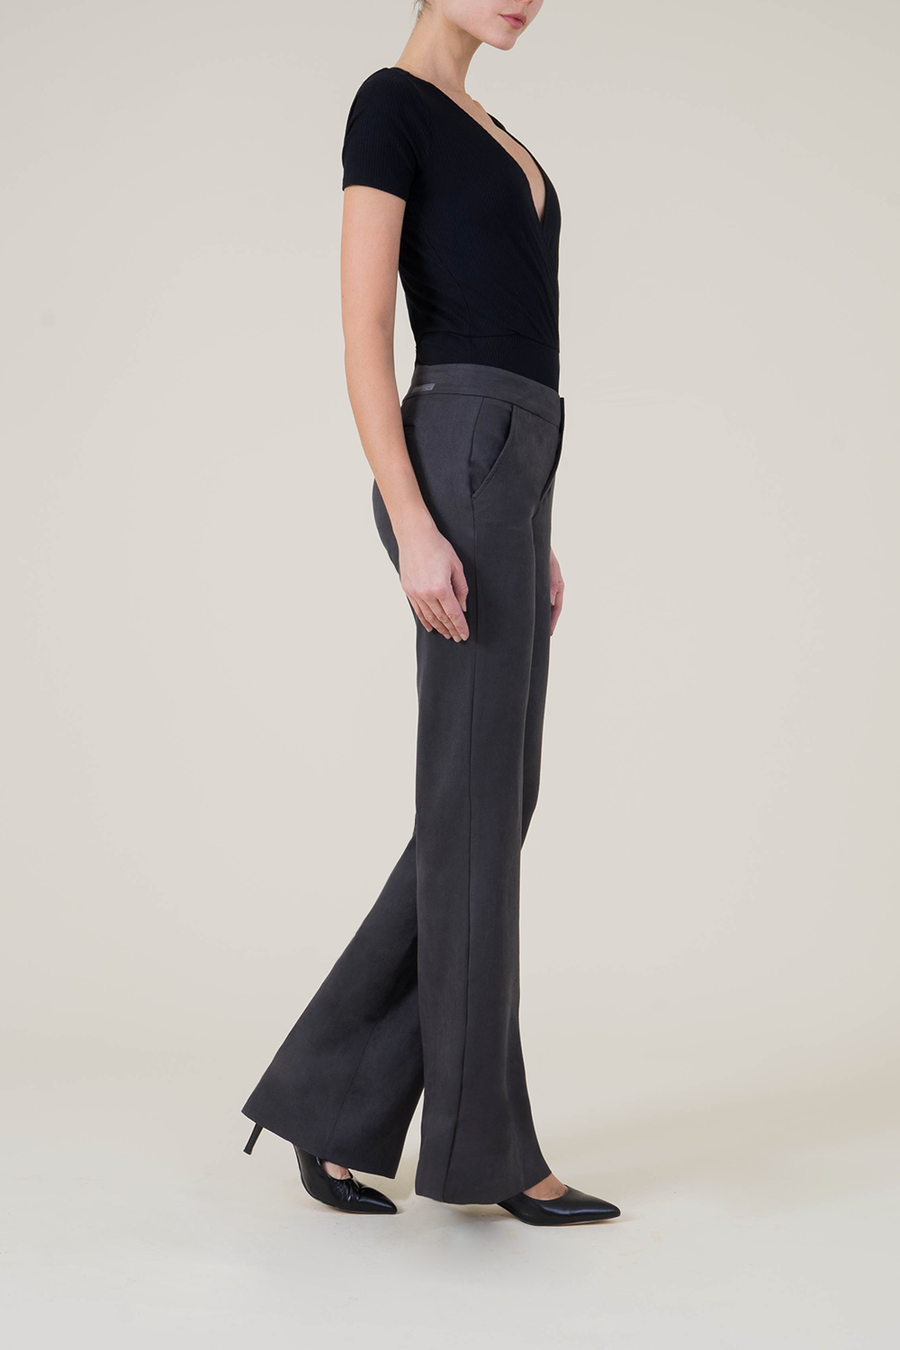 Newport Wide Leg Trouser - level99jeans